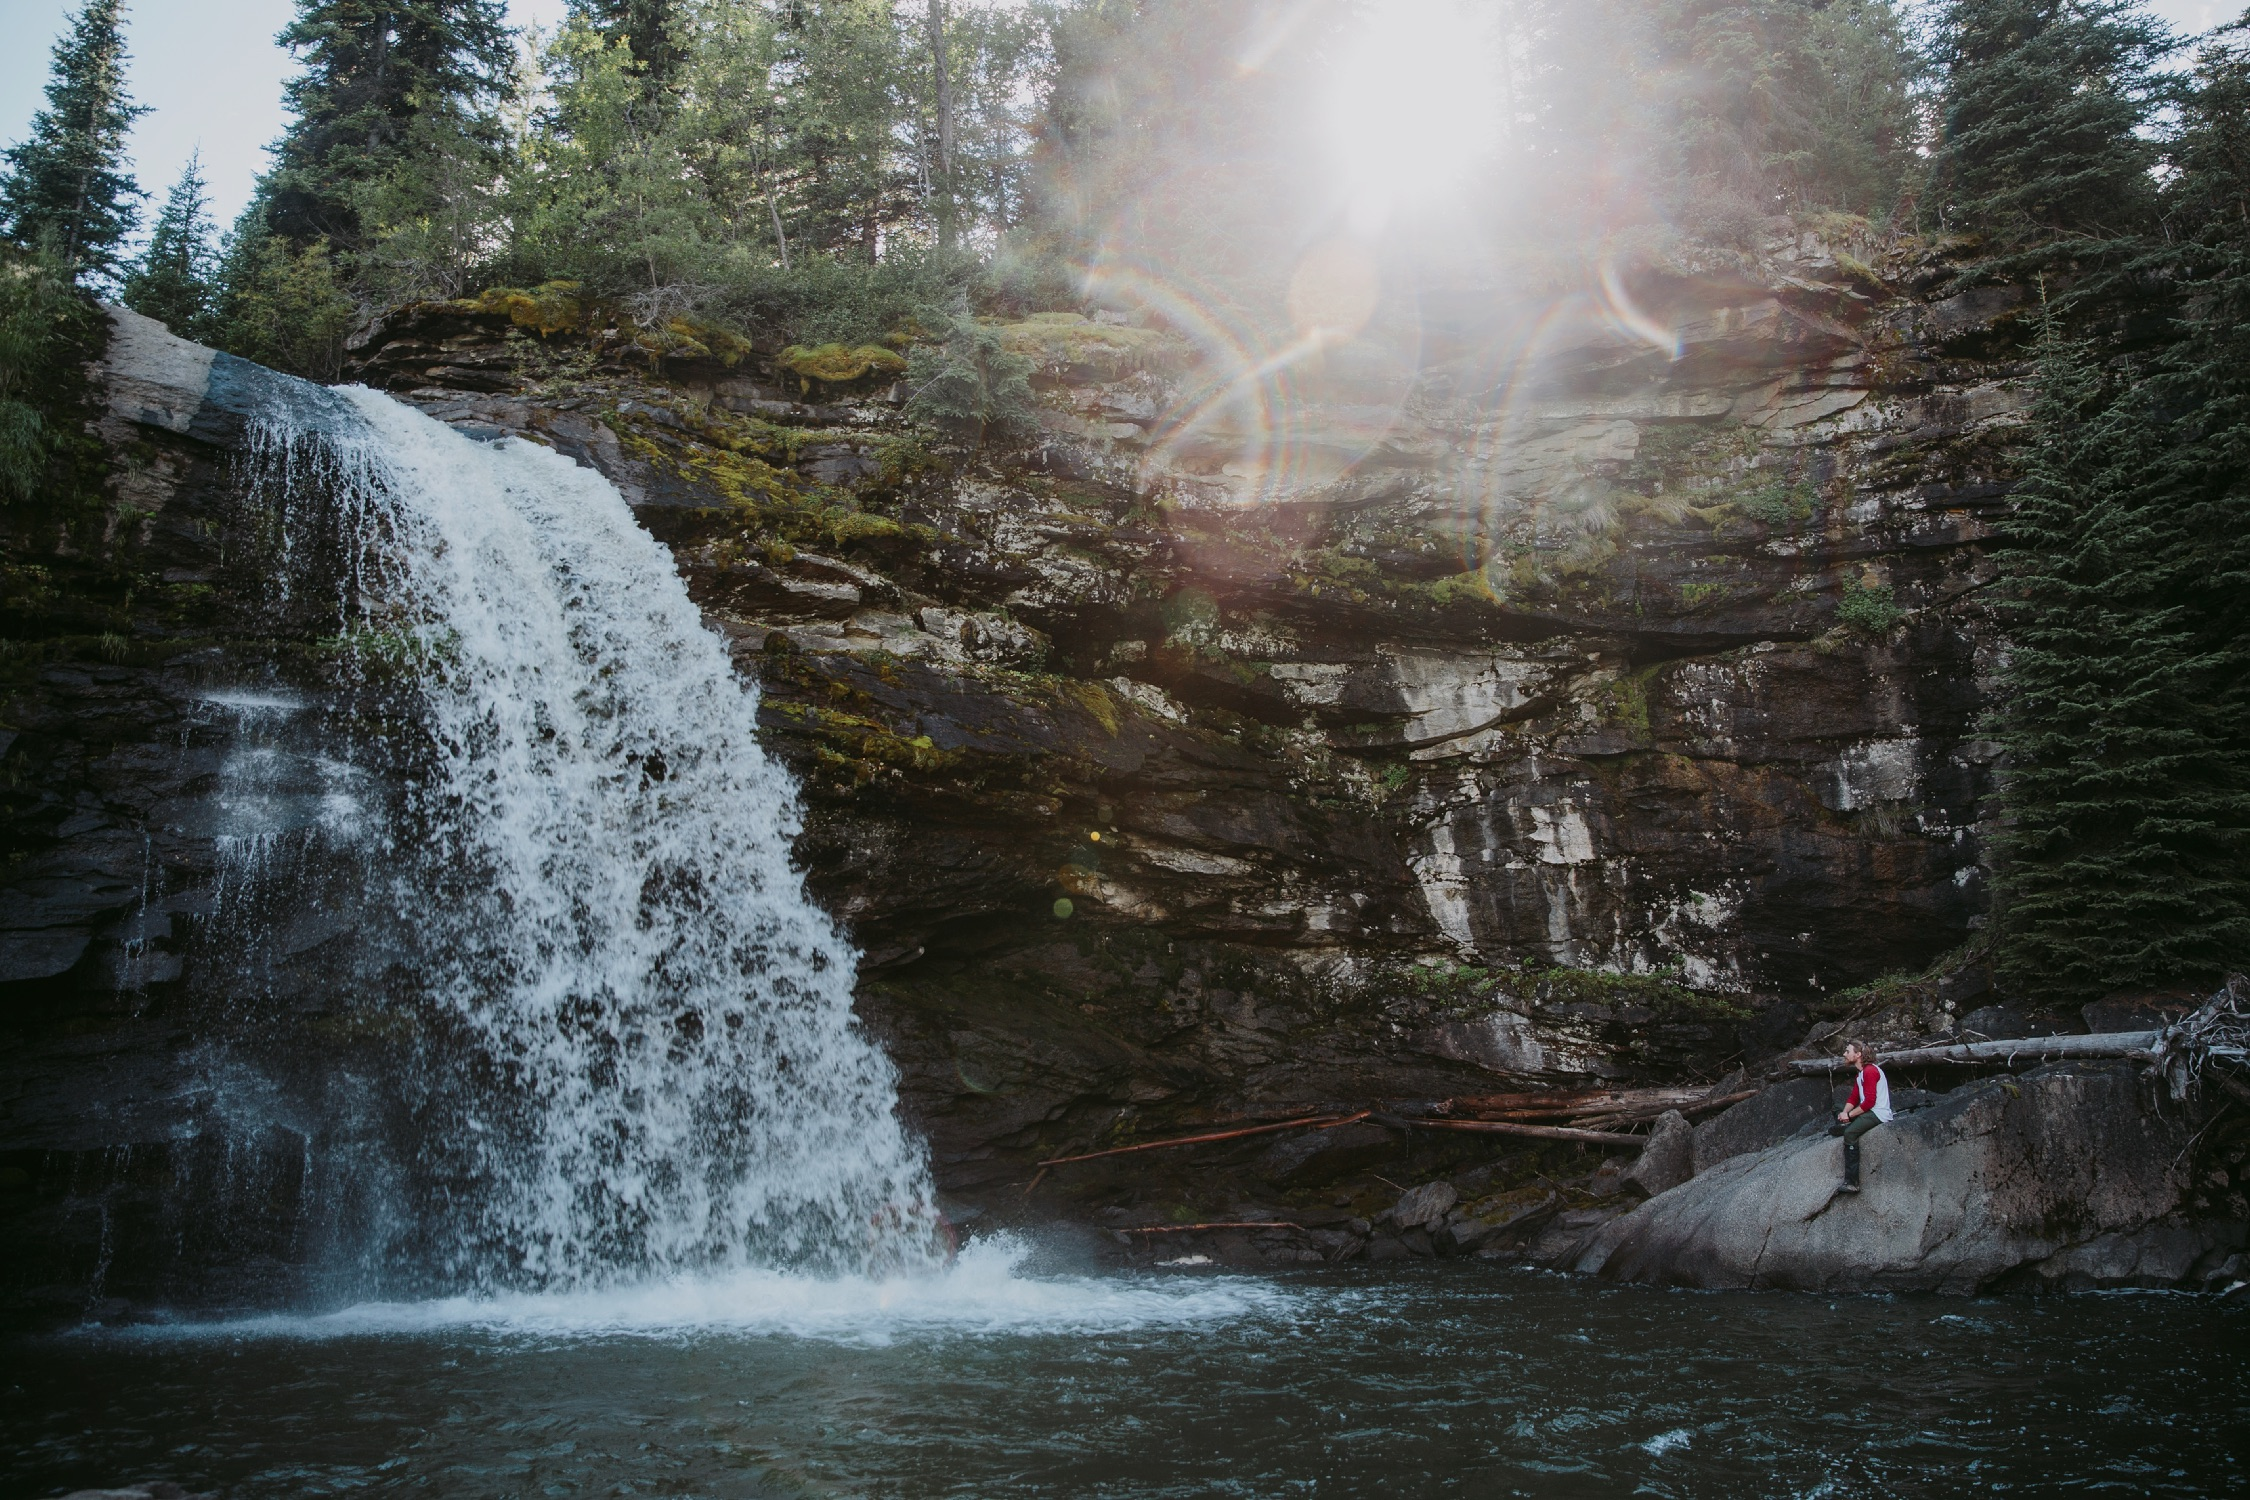 A person sits on a rock next to Babcock Falls in Tumbler Ridge.